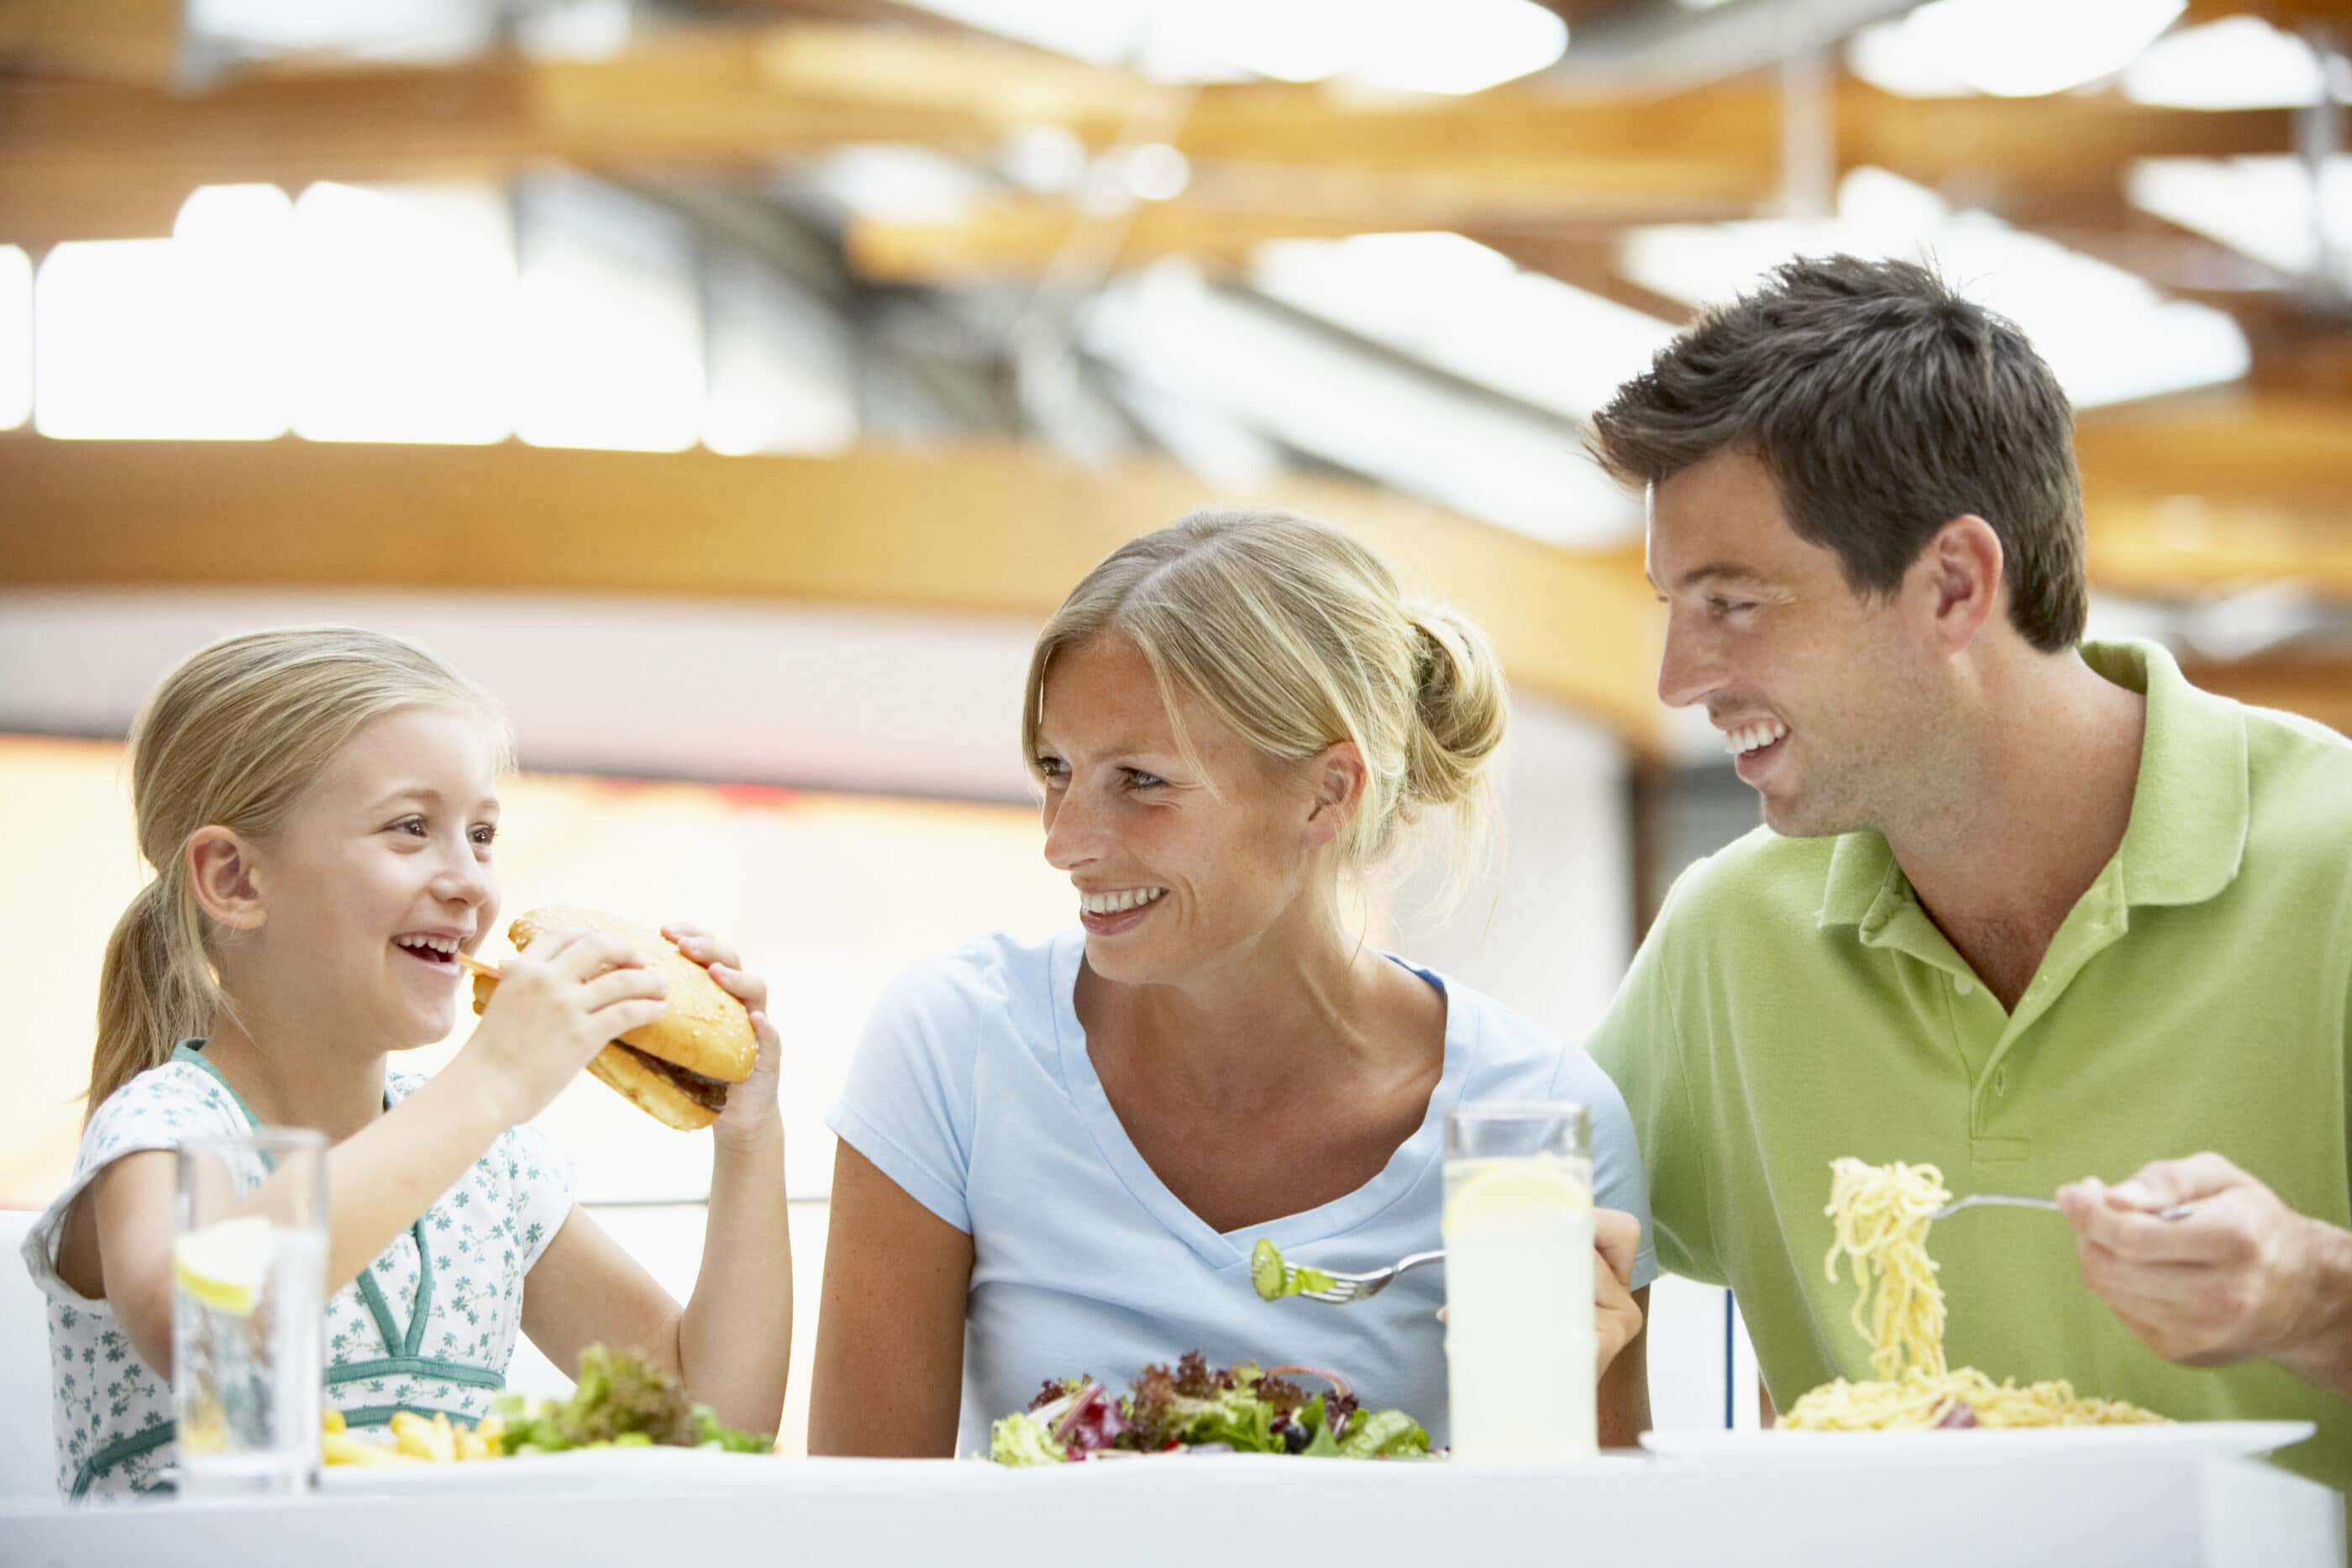 A family of two adults and a little eat lunch together.